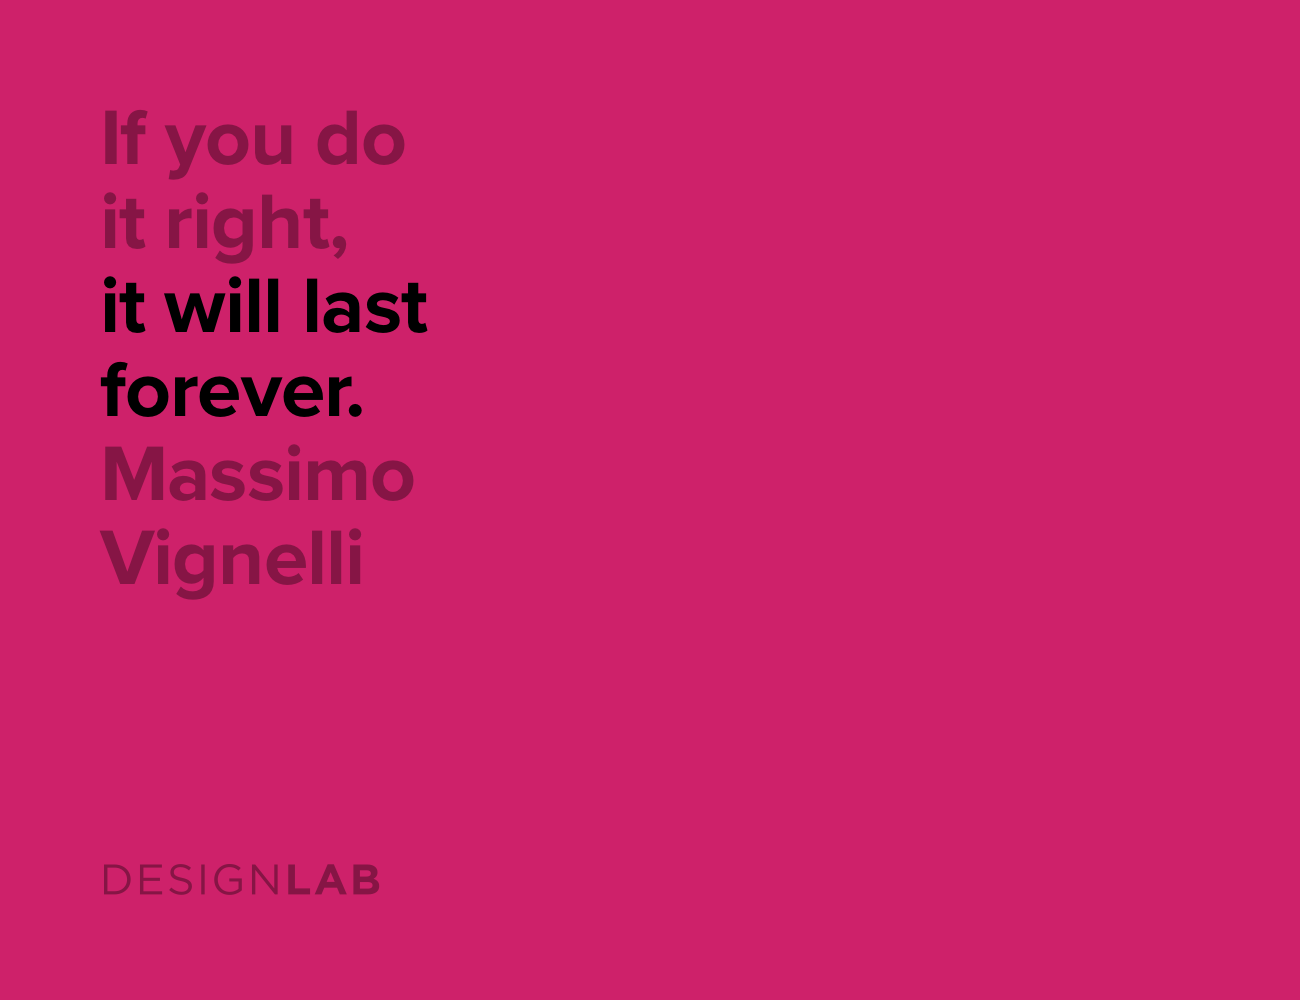 If you do it right, it will last forever. Massimo Vignelli